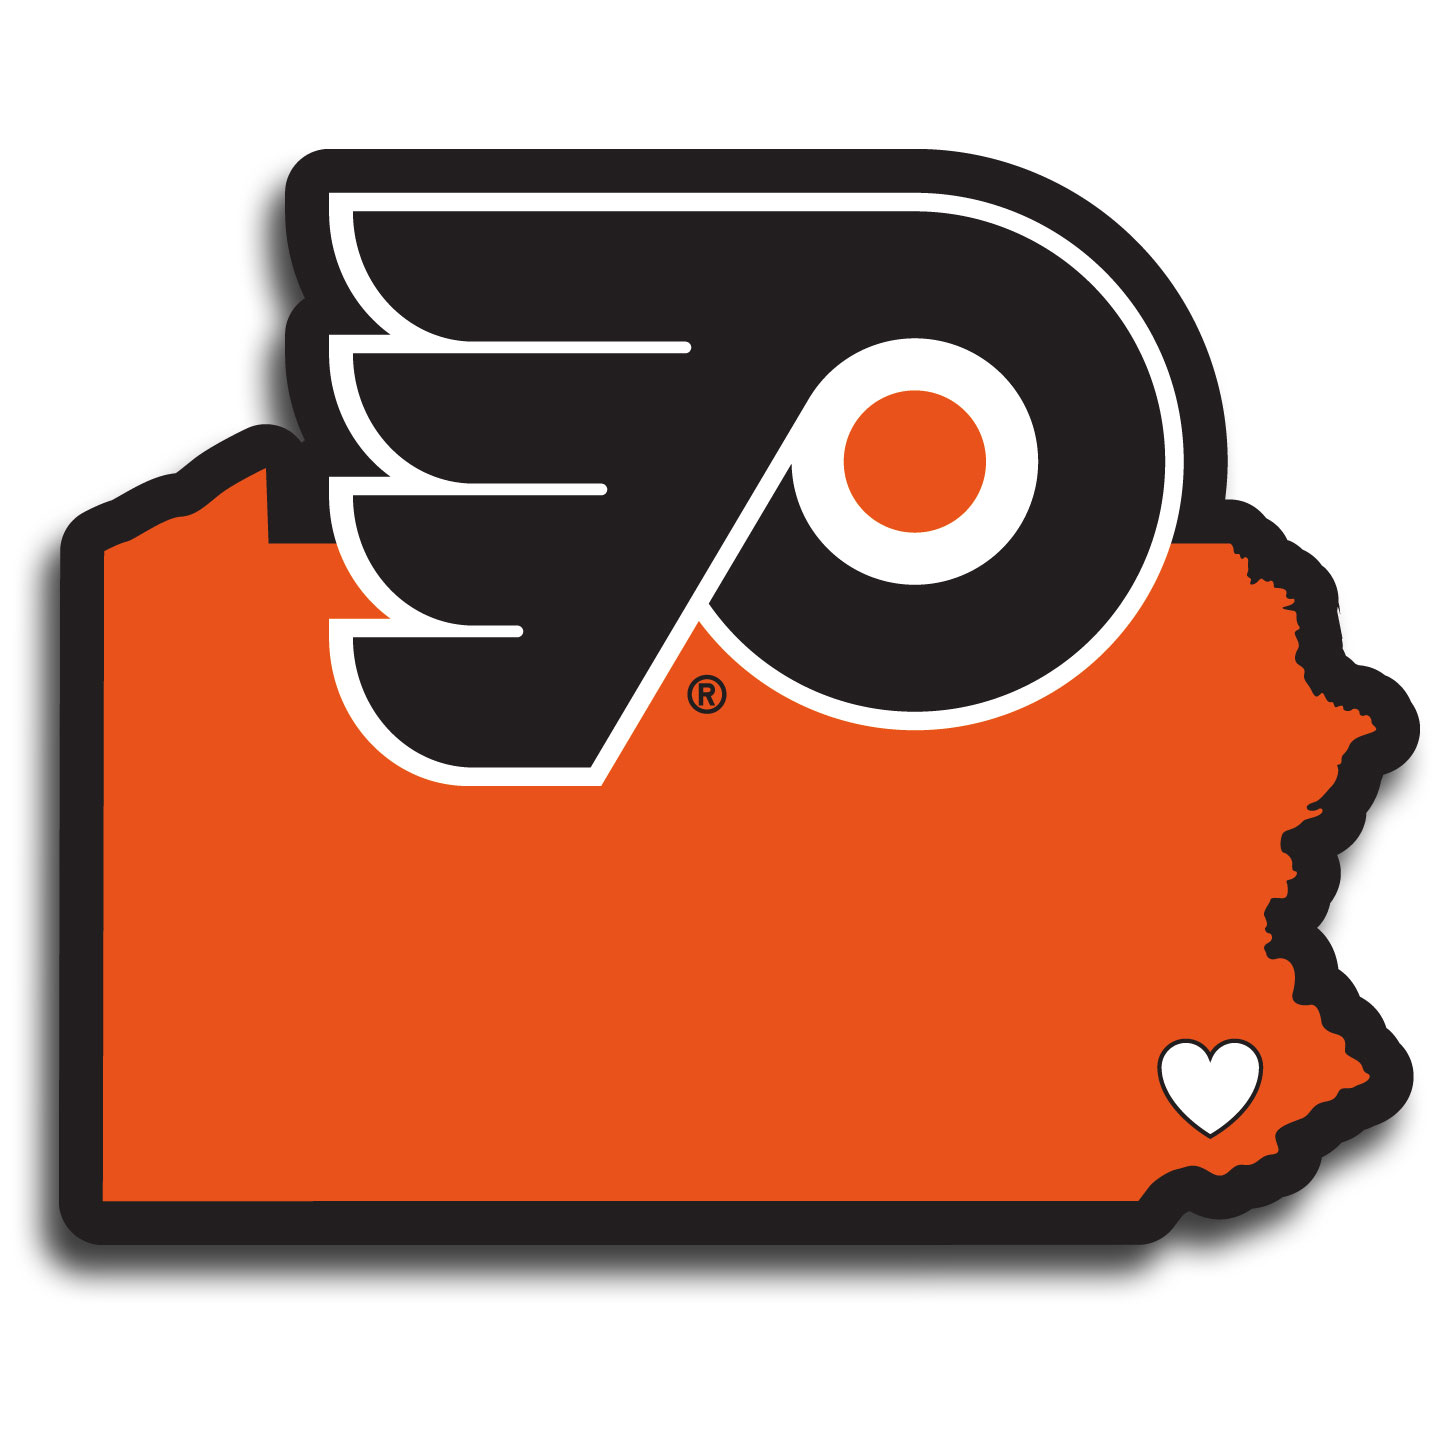 Philadelphia Flyers® Home State Decal - It's a home state decal with a sporty twist! This Philadelphia Flyers® decal feature the team logo over a silhouette of the state in team colors and a heart marking the home of the team. The decal is approximately 5 inches on repositionable vinyl.